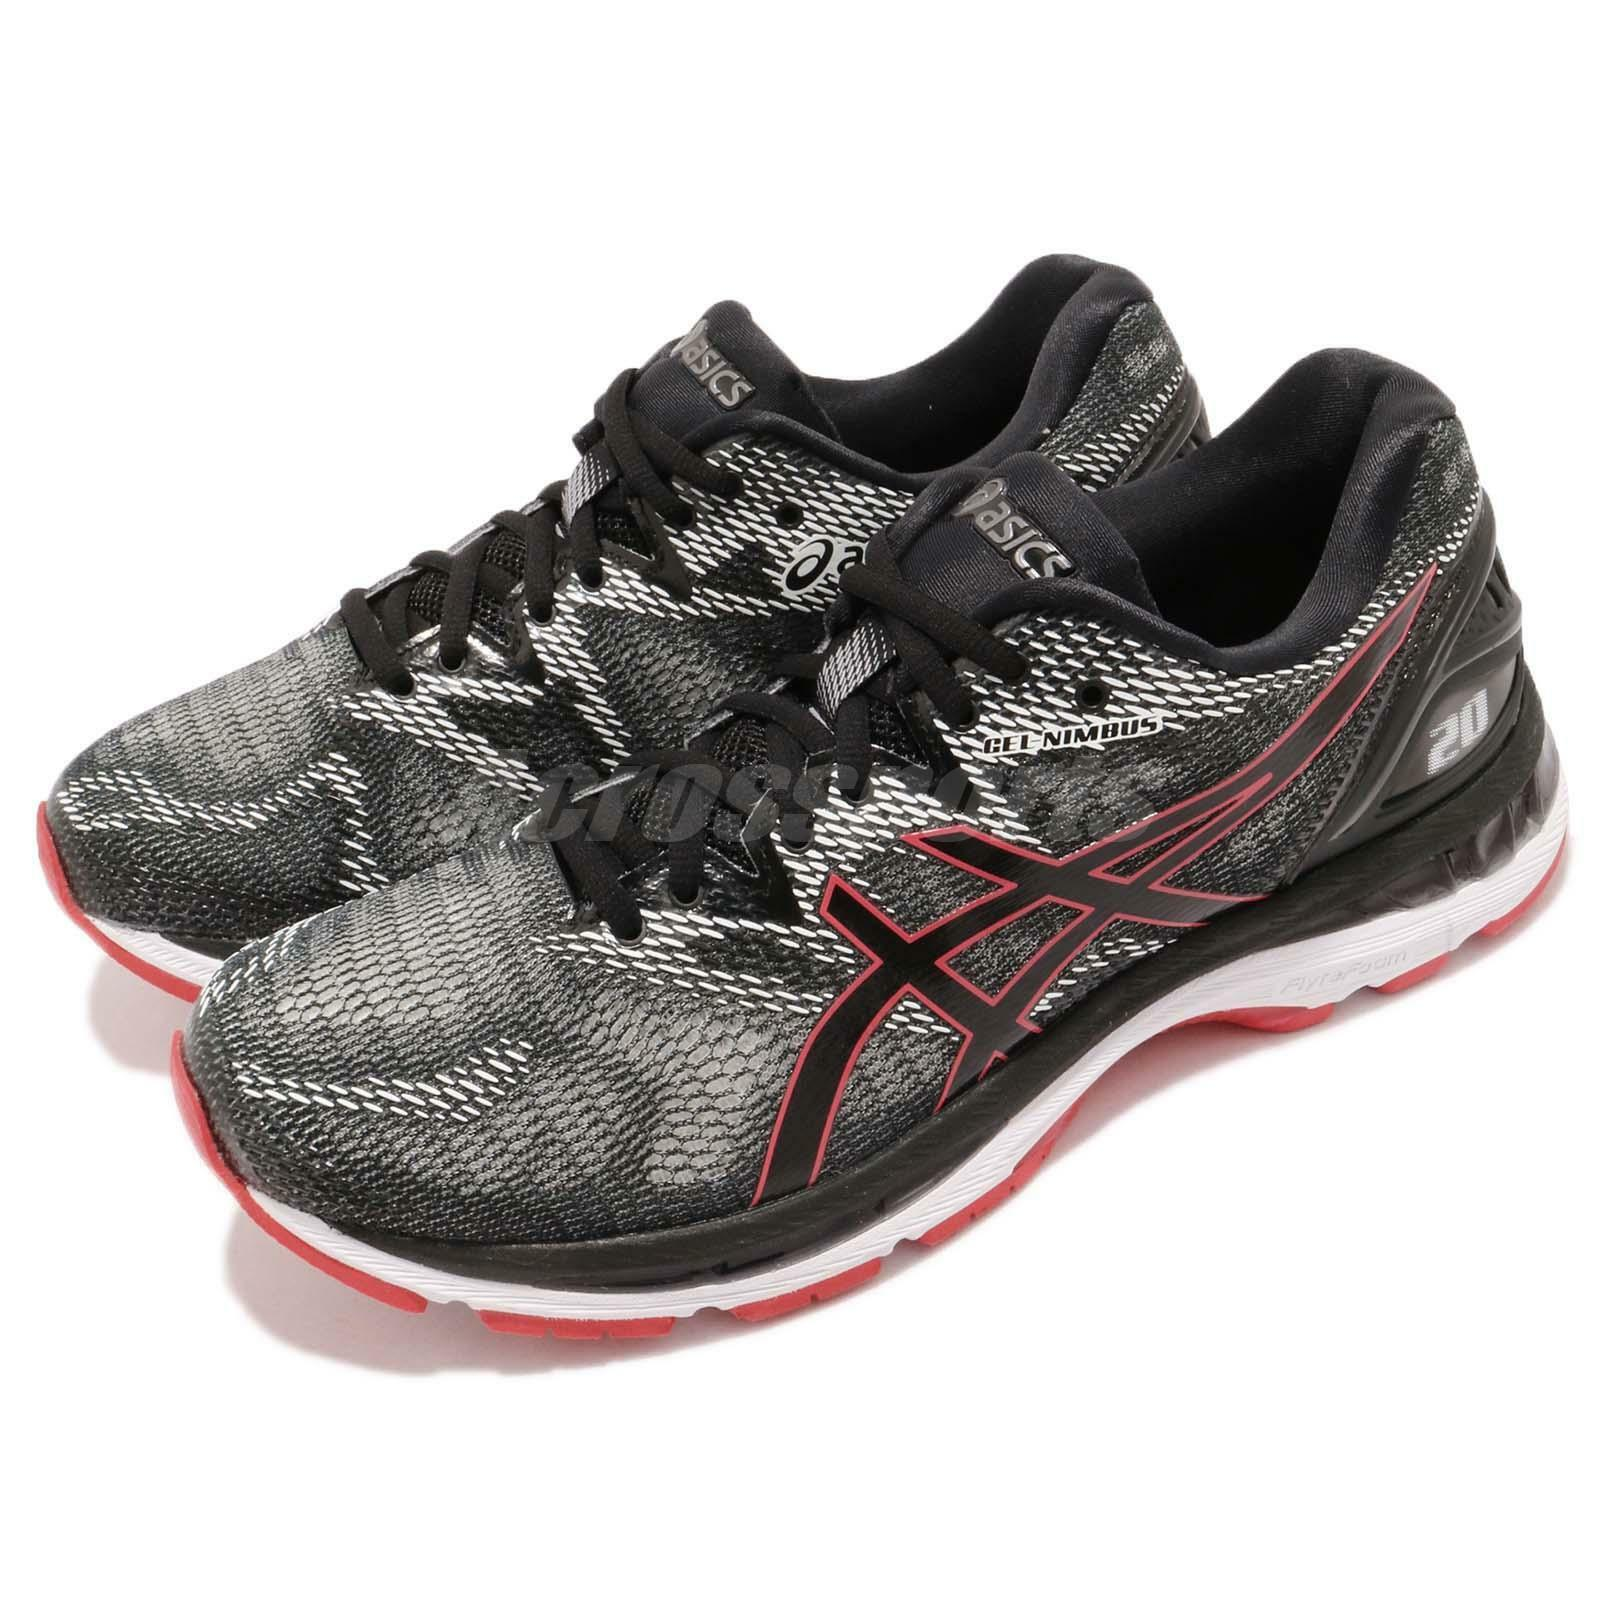 Asics Gel -Nimbus 20 Men scarpe Road Running Training Walking  Fashion T800N -002  miglior reputazione